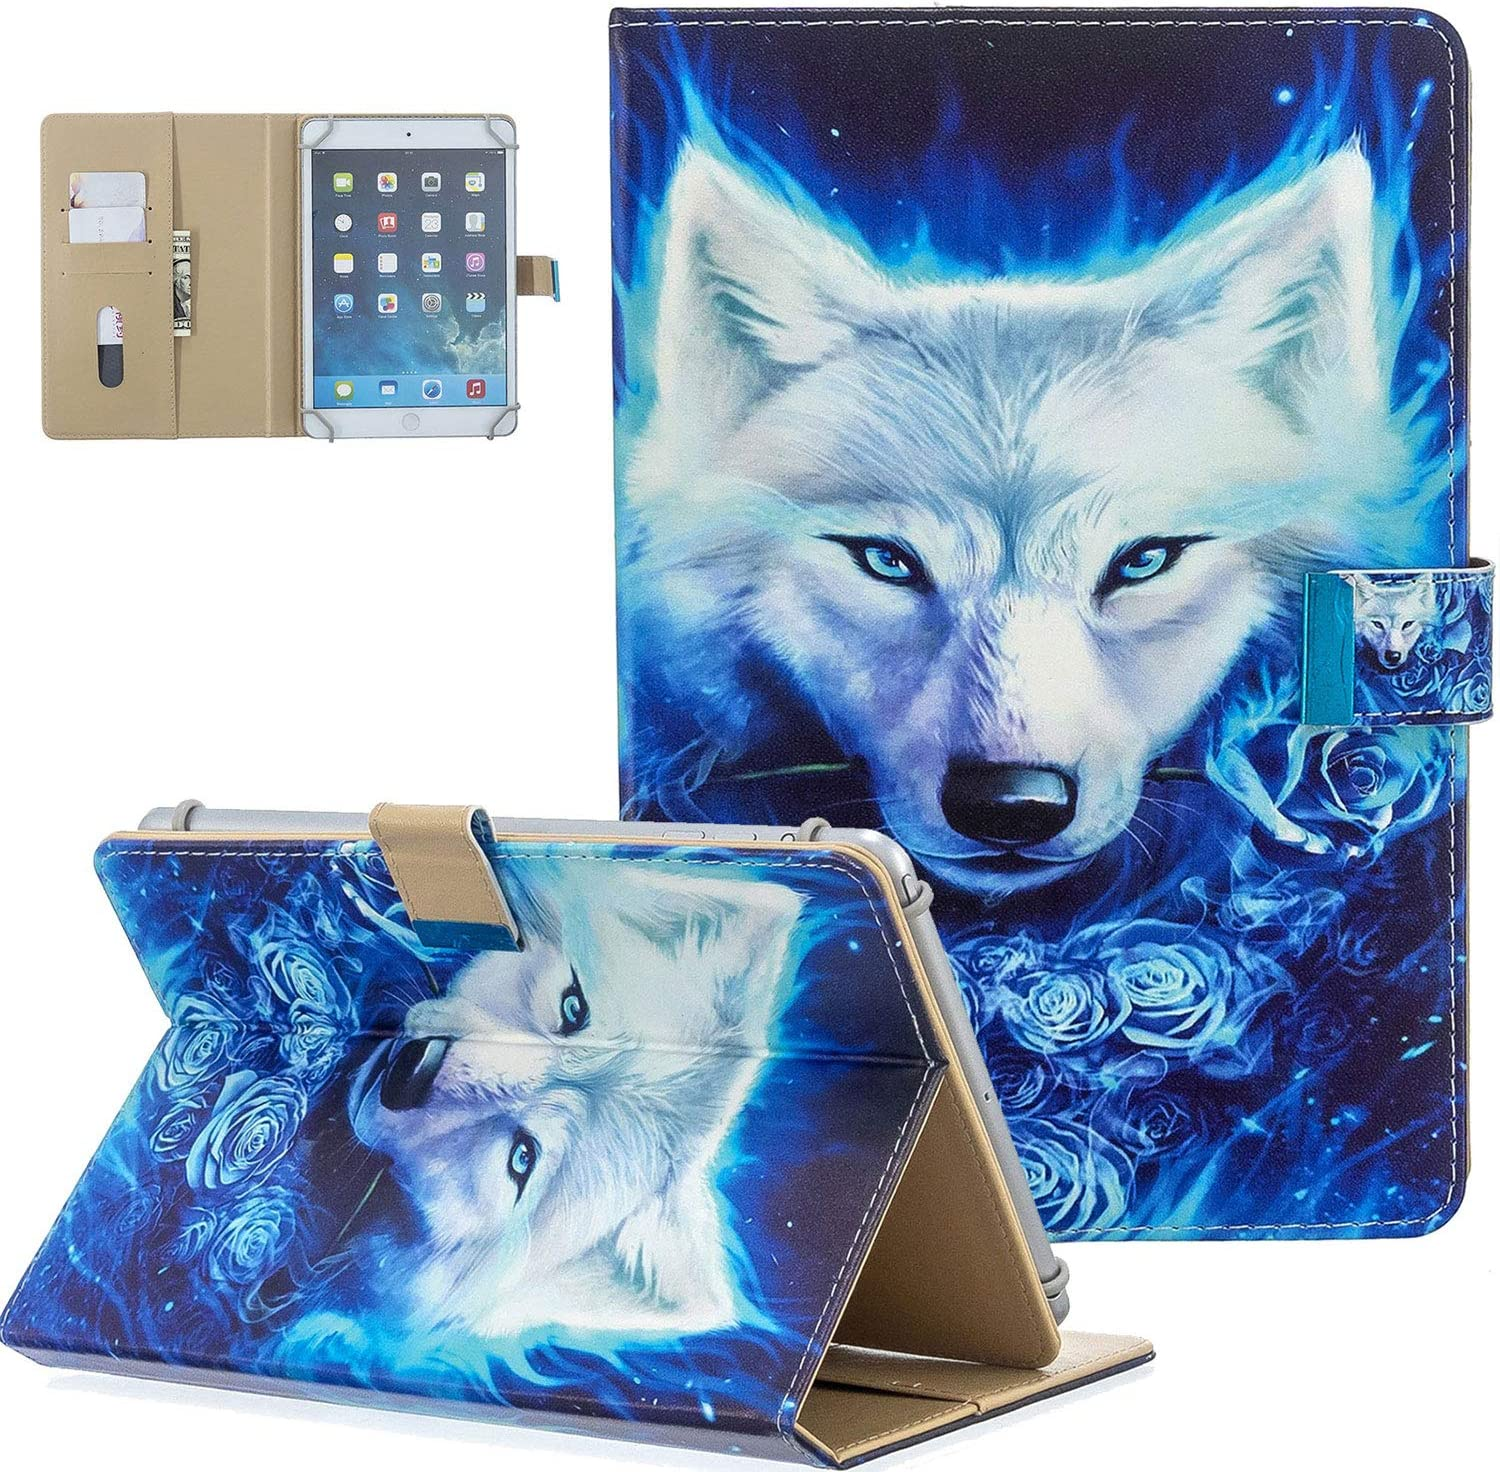 """UGOcase 9.5-10.5 inch Tablet Case, PU Leather Folio Stand Case [Card Slots&Pocket] for Fire HD 10,iPad Air 1/2,iPad 9.7 2017/2018,iPad Pro 9.7/Pro 10.5 & Other 9.5""""-10.5"""" Tablet,White Wolf"""